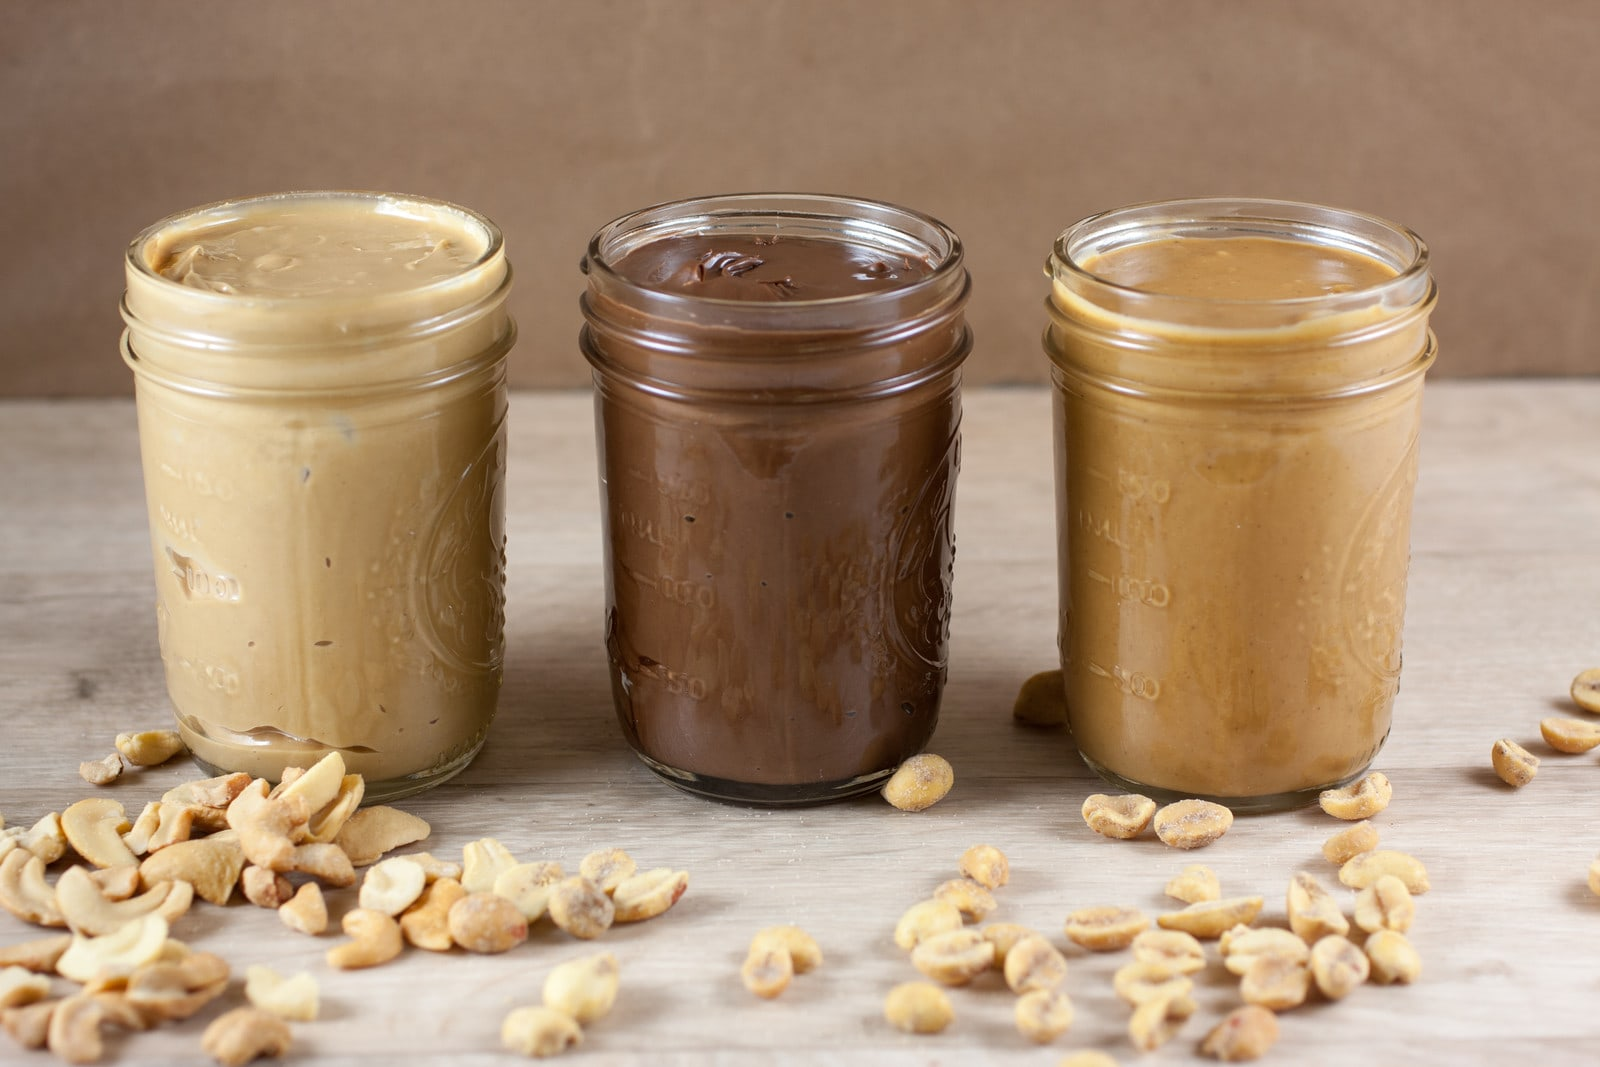 three jars of keto nut butter lined up in a row next to peanuts